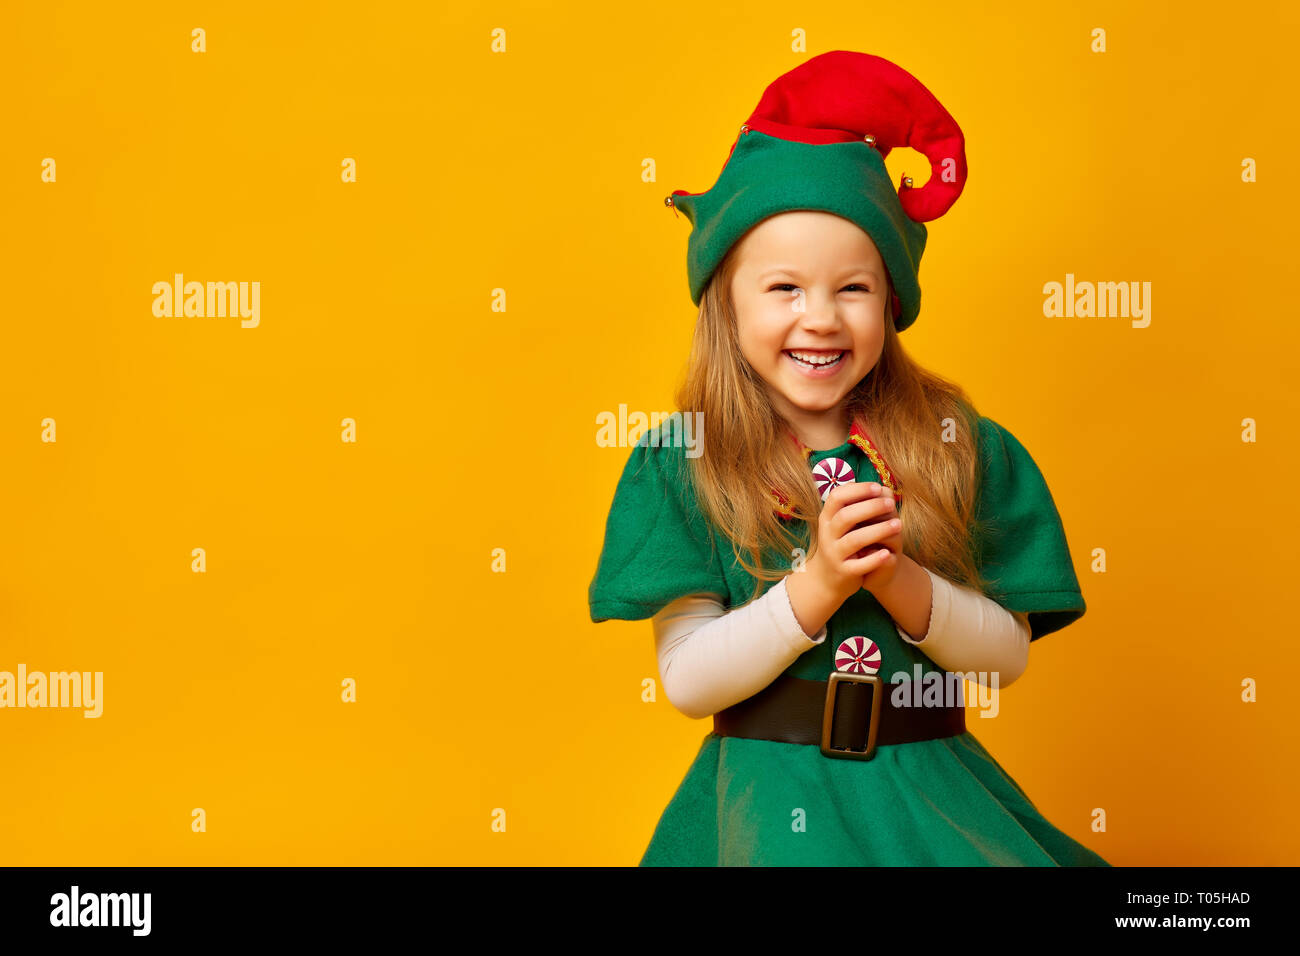 cunning little girl elf, studio photo on a background - Stock Image